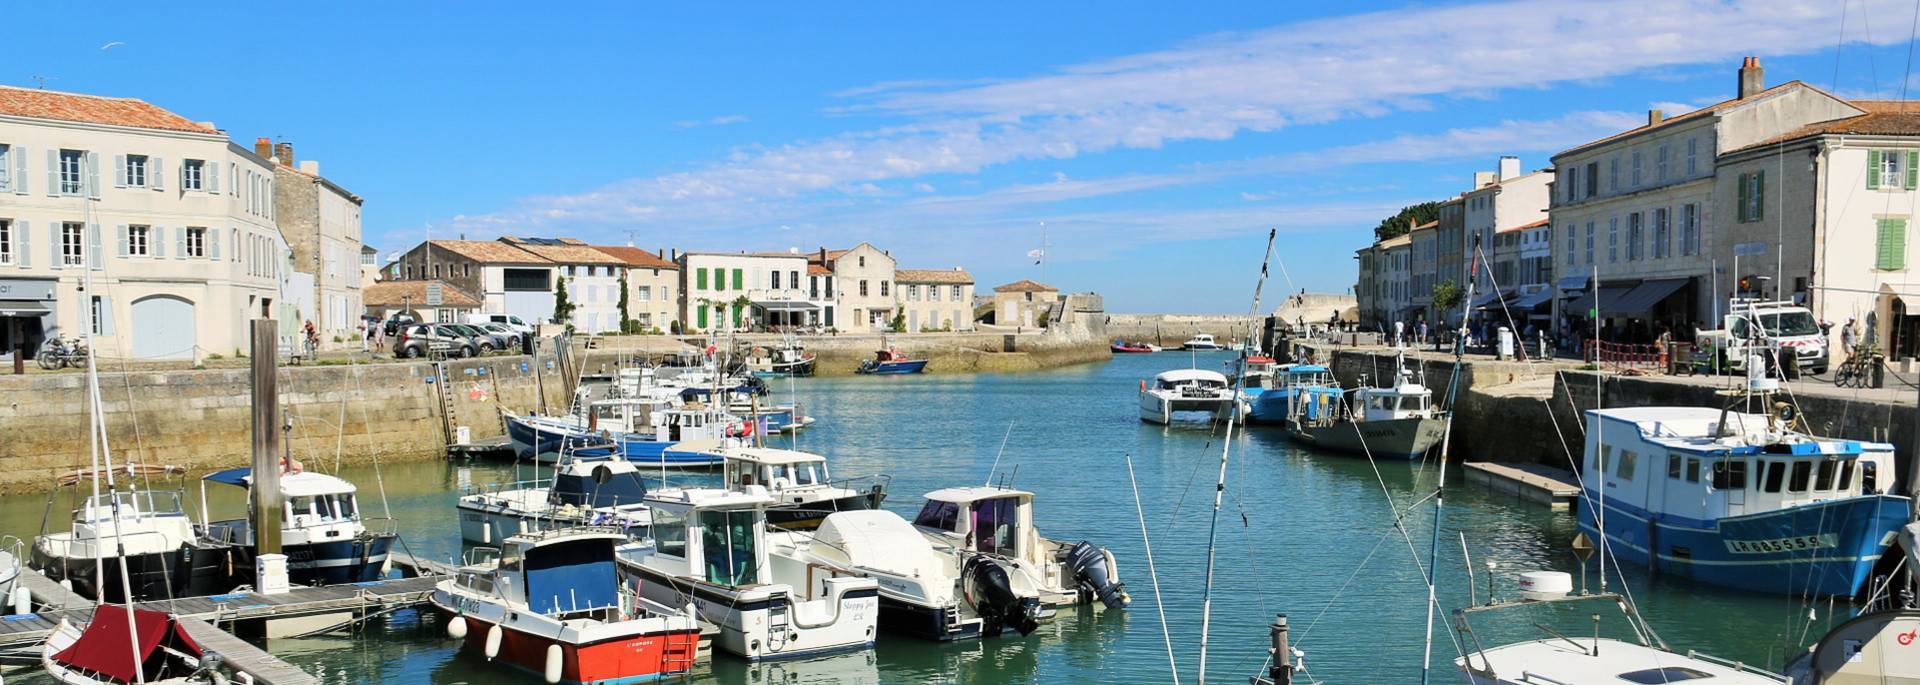 Harbor of Saint Martin de Ré by Lesley Williamson